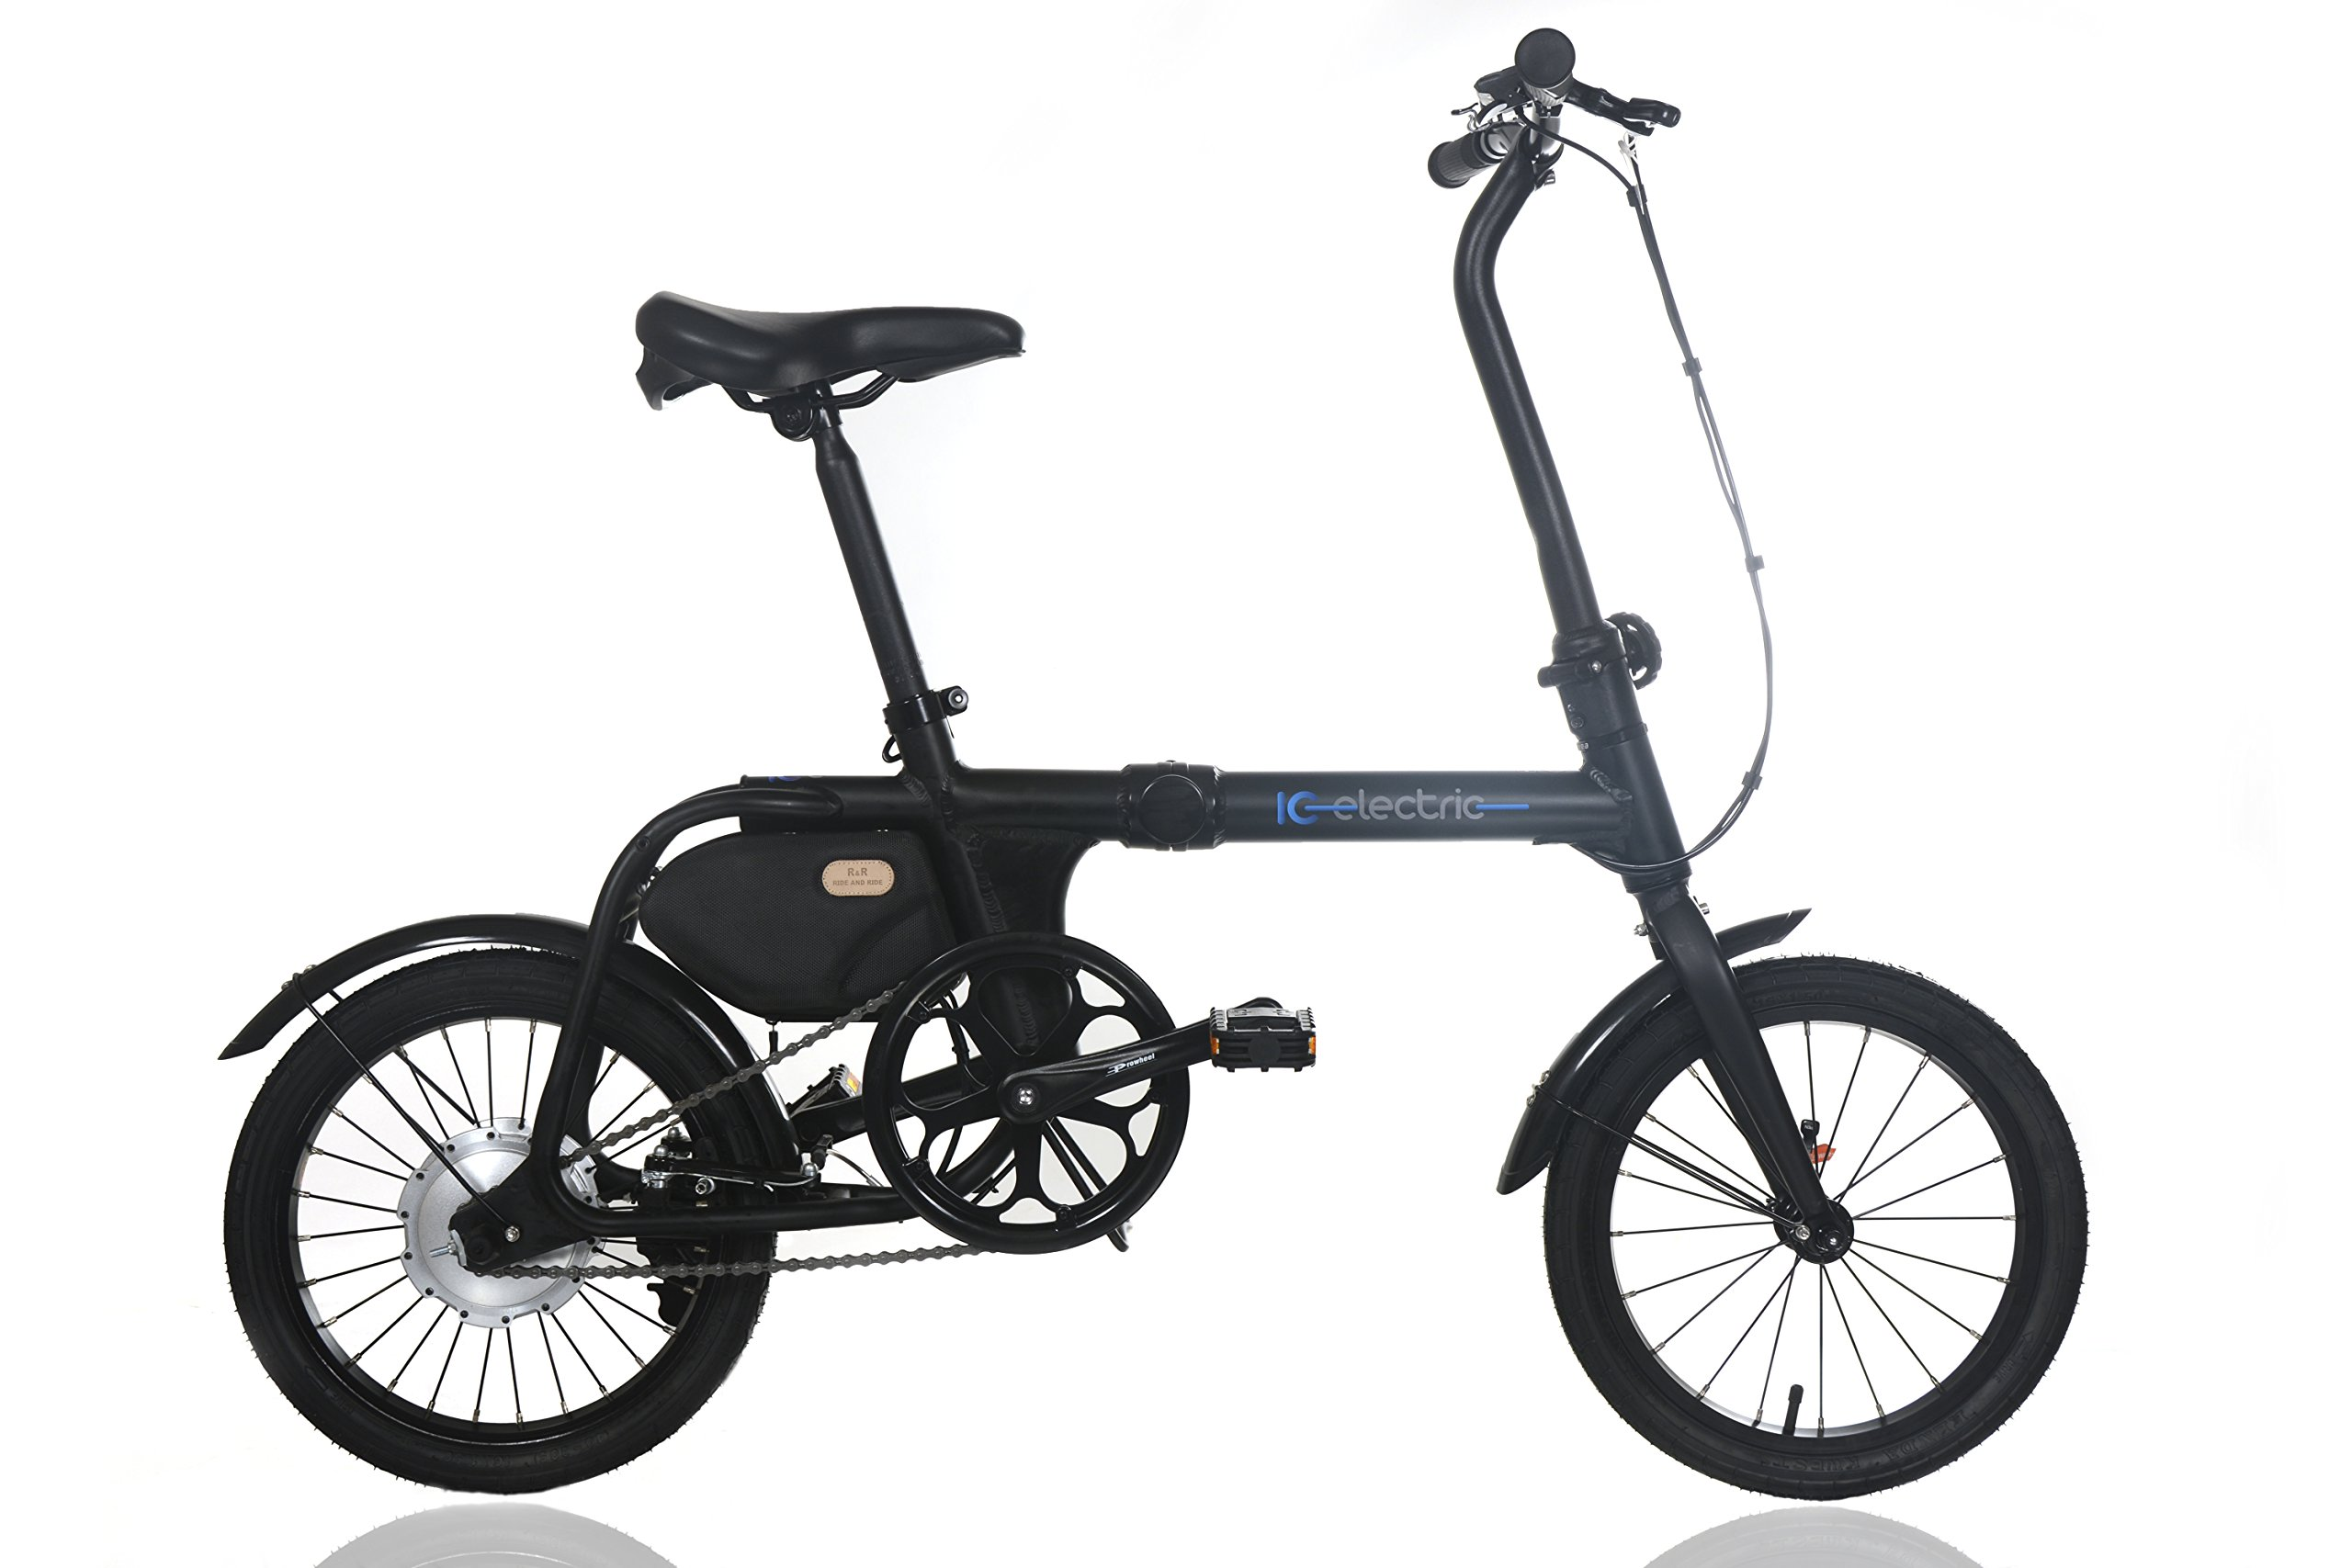 Bicicleta eléctrica plegable Micro de IC Electric